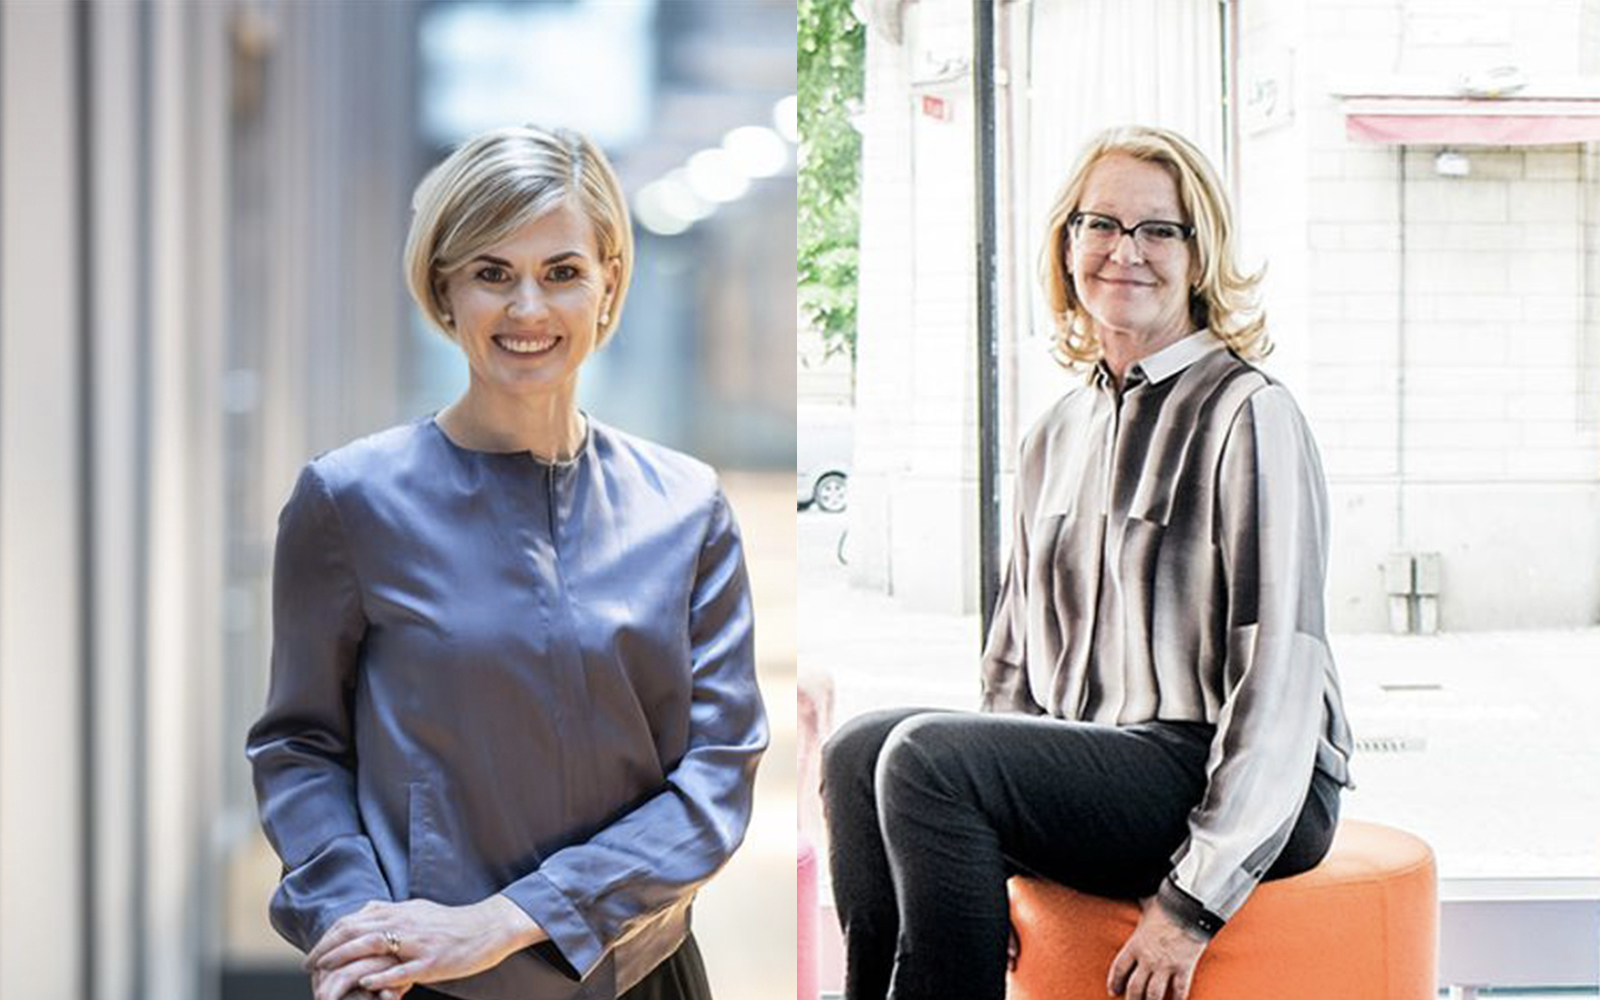 024. Michaela Ahlberg & Anna Romberg: Culture & Ethics in a Corruption Scandal